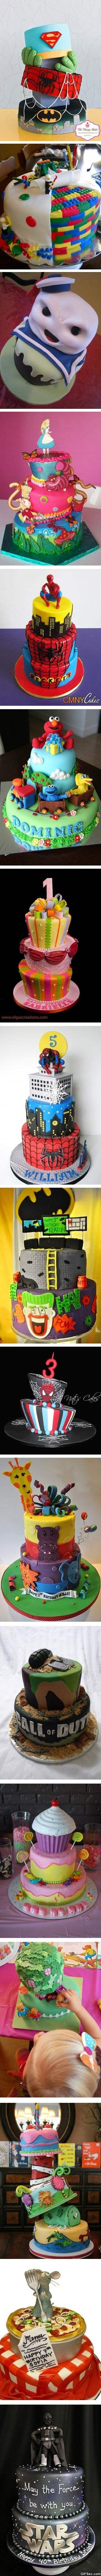 Funny Pictures - Cool Birthday Cakes